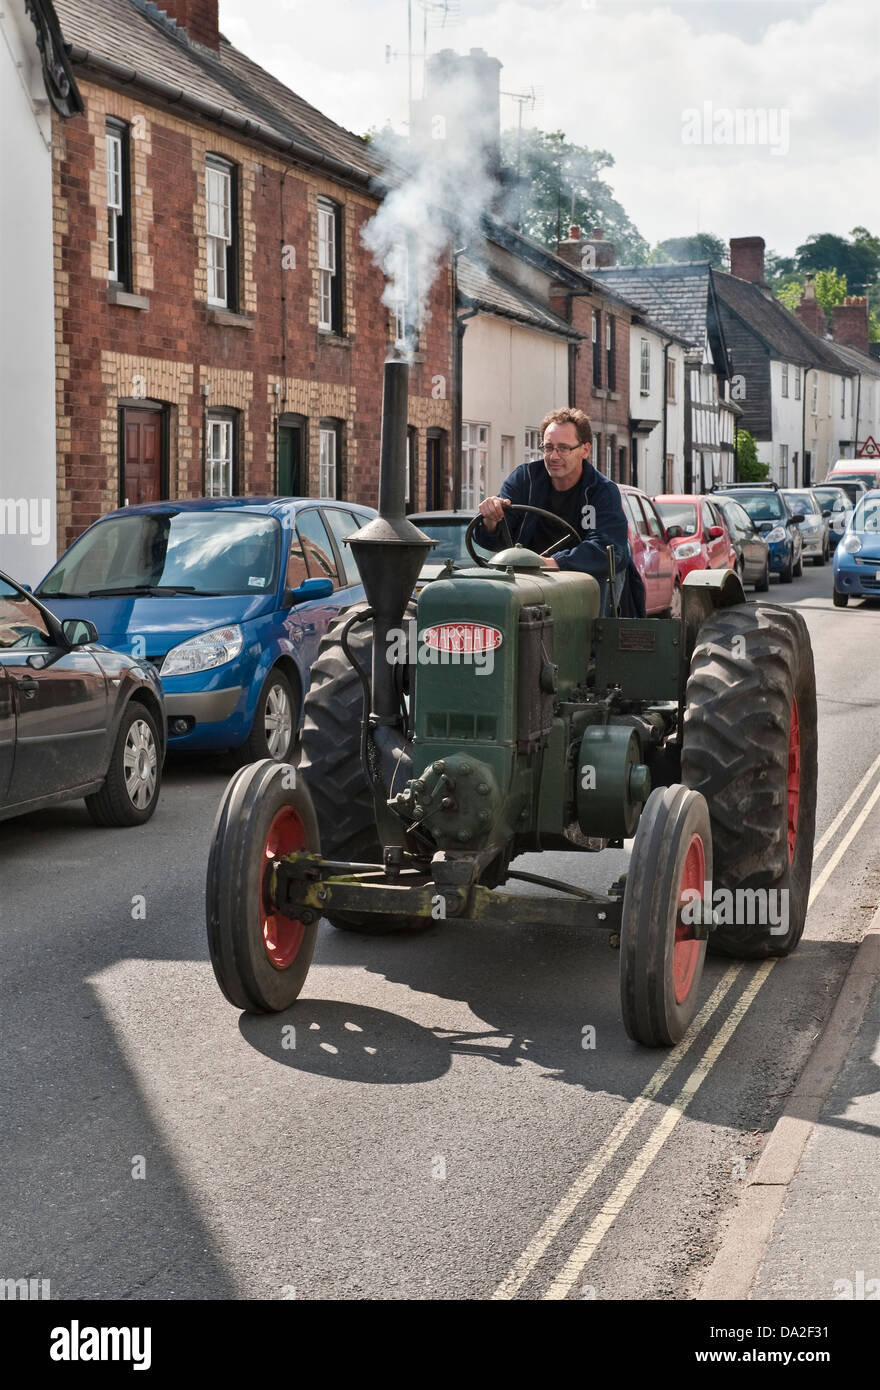 Presteigne, Powys, UK. A Marshall tractor leaving the annual vintage vehicle rally. This is a Type M from about - Stock Image